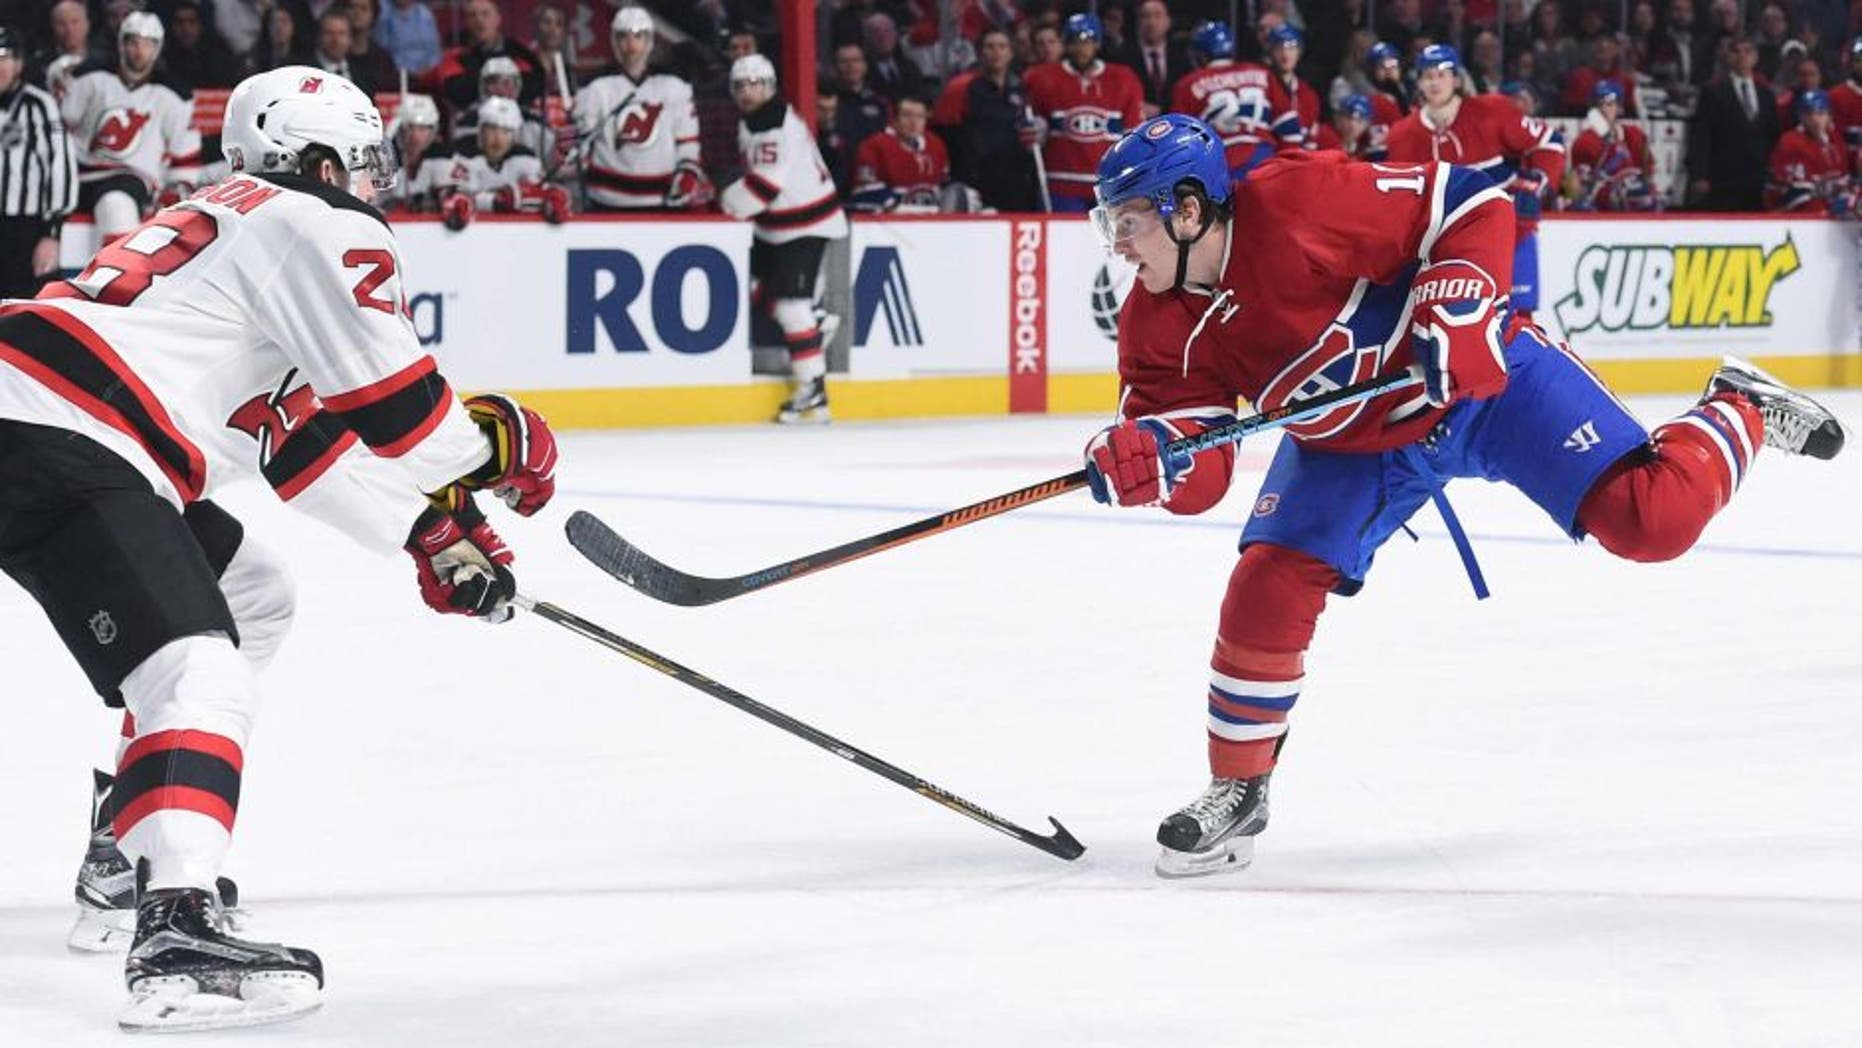 MONTREAL, QC - JANUARY 6: Brendan Gallagher #11 of the Montreal Canadiens takes a shot against the New Jersey Devils in the NHL game at the Bell Centre on January 6, 2016 in Montreal, Quebec, Canada. (Photo by Francois Lacasse/NHLI via Getty Images)